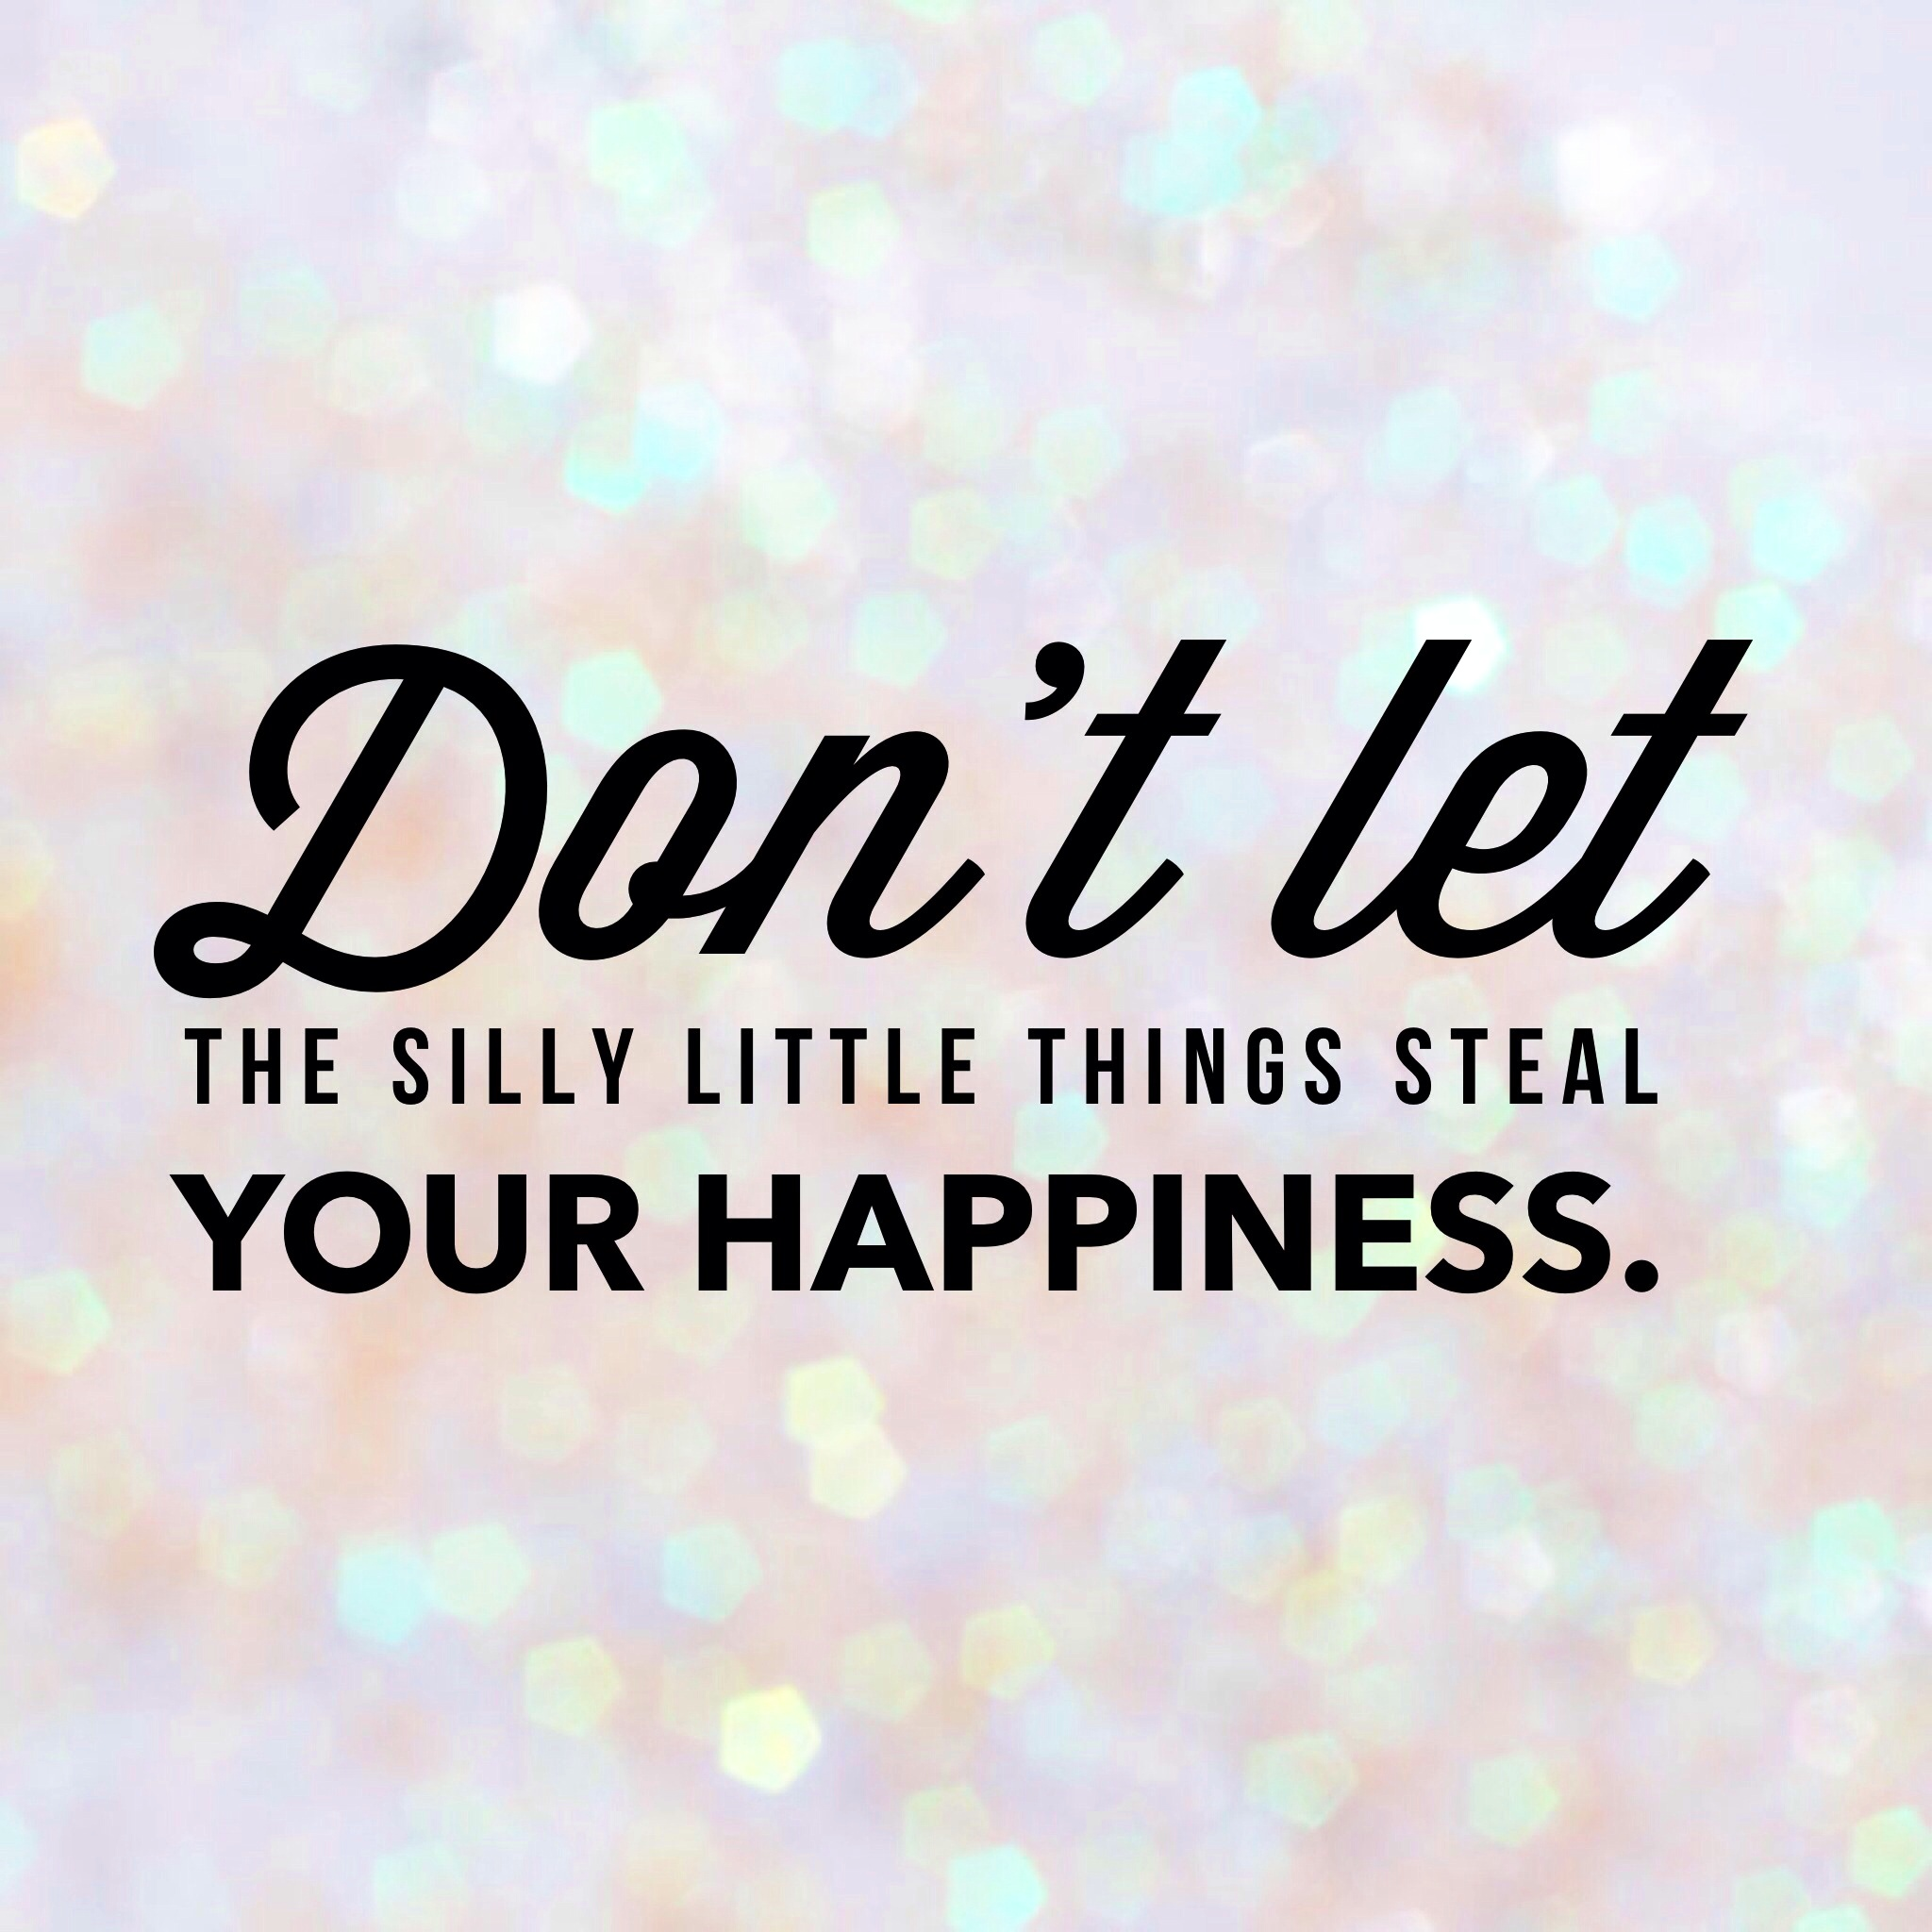 Merveilleux Don`t Let The Silly Little Things Steal Your Happiness. Quotes About  Happiness